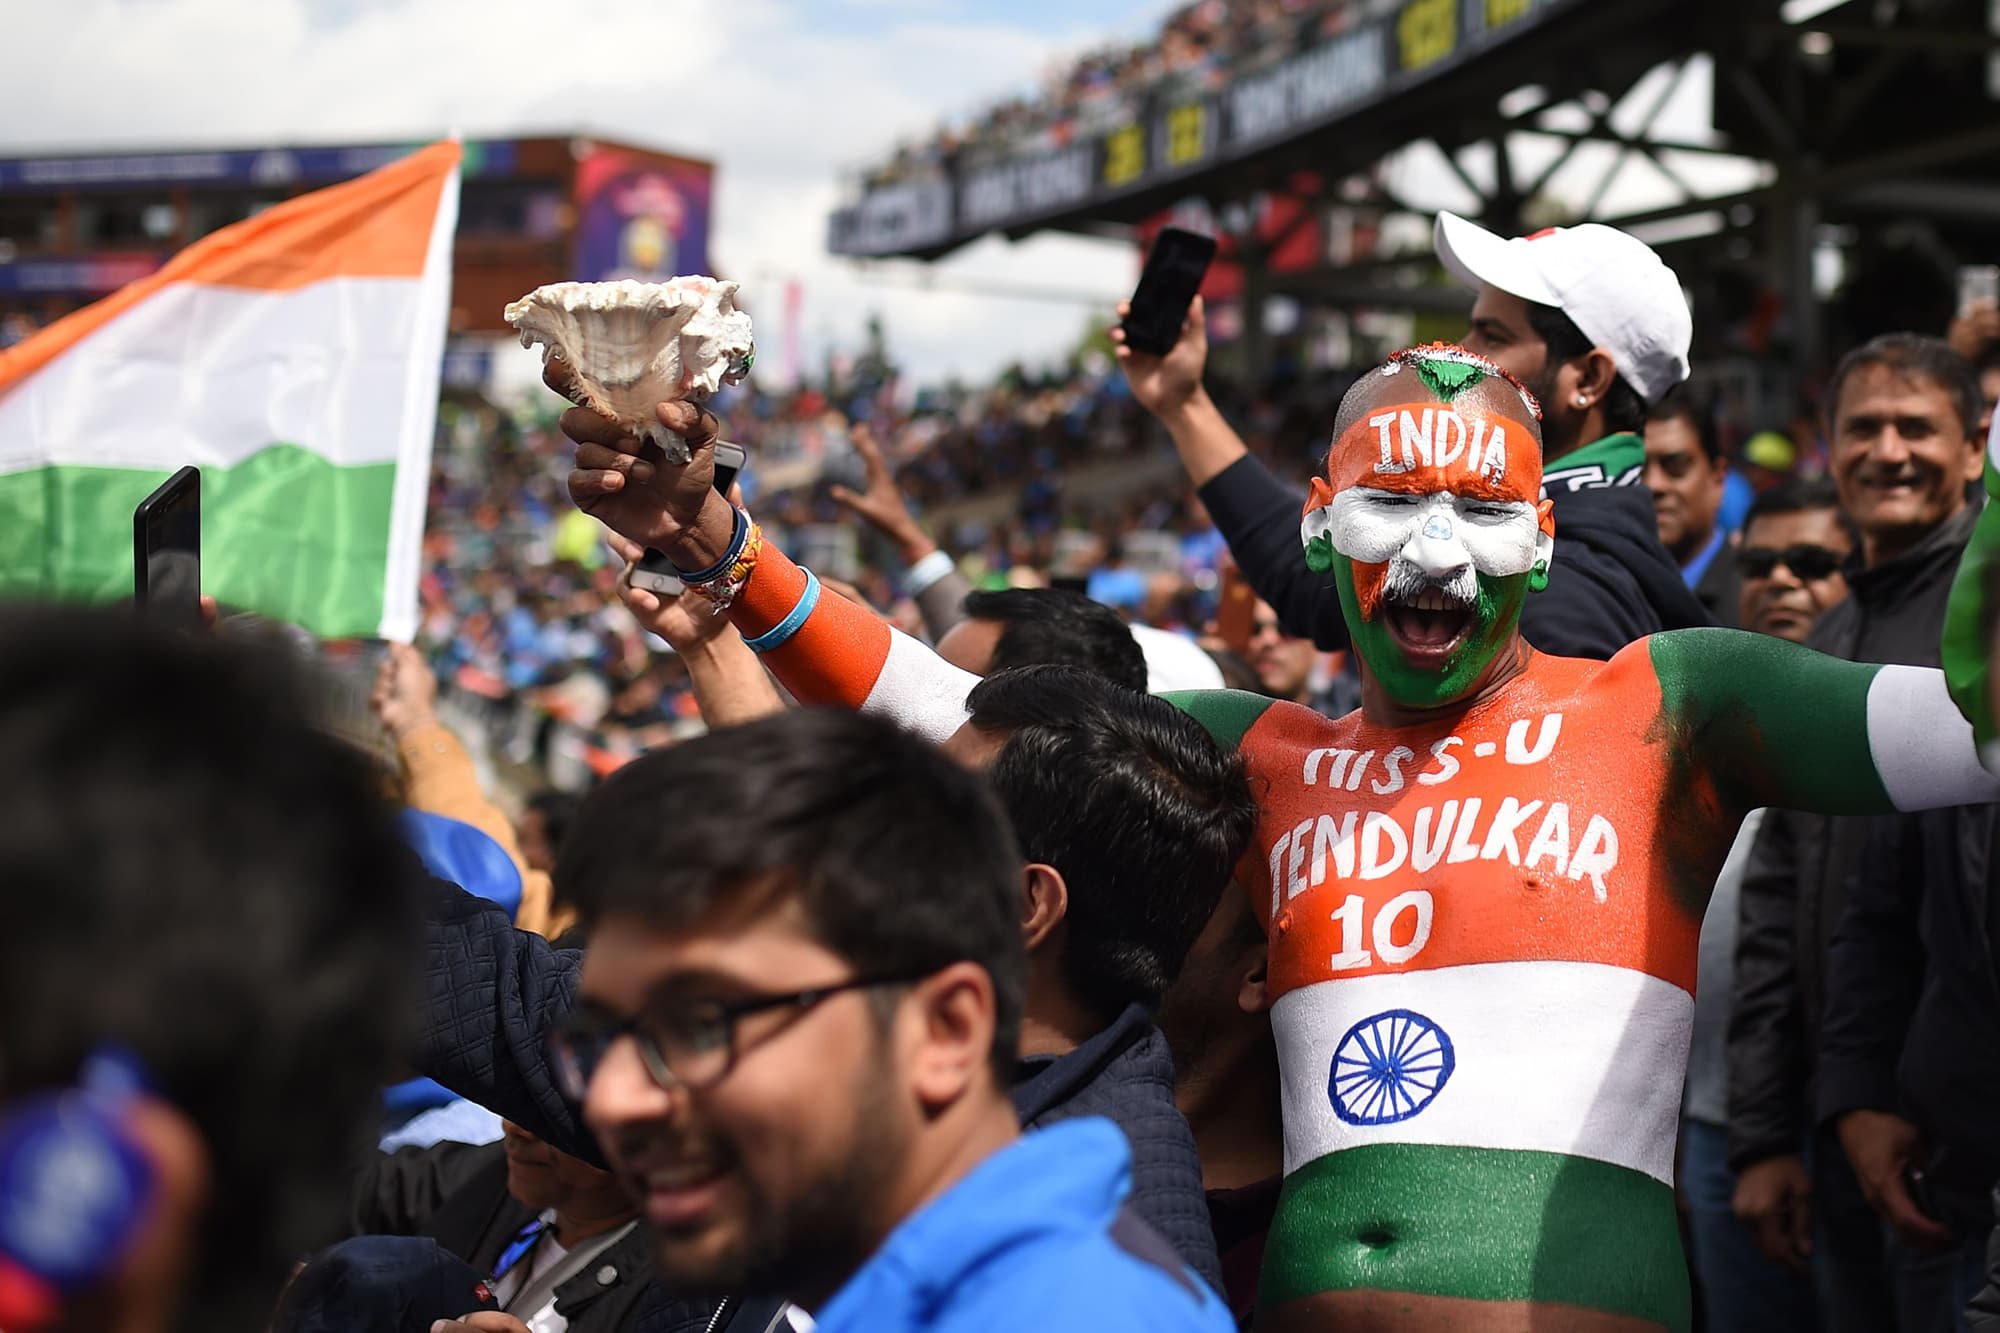 An Indian fan painted in the national colours poses for a photograph in the crowd. — AFP